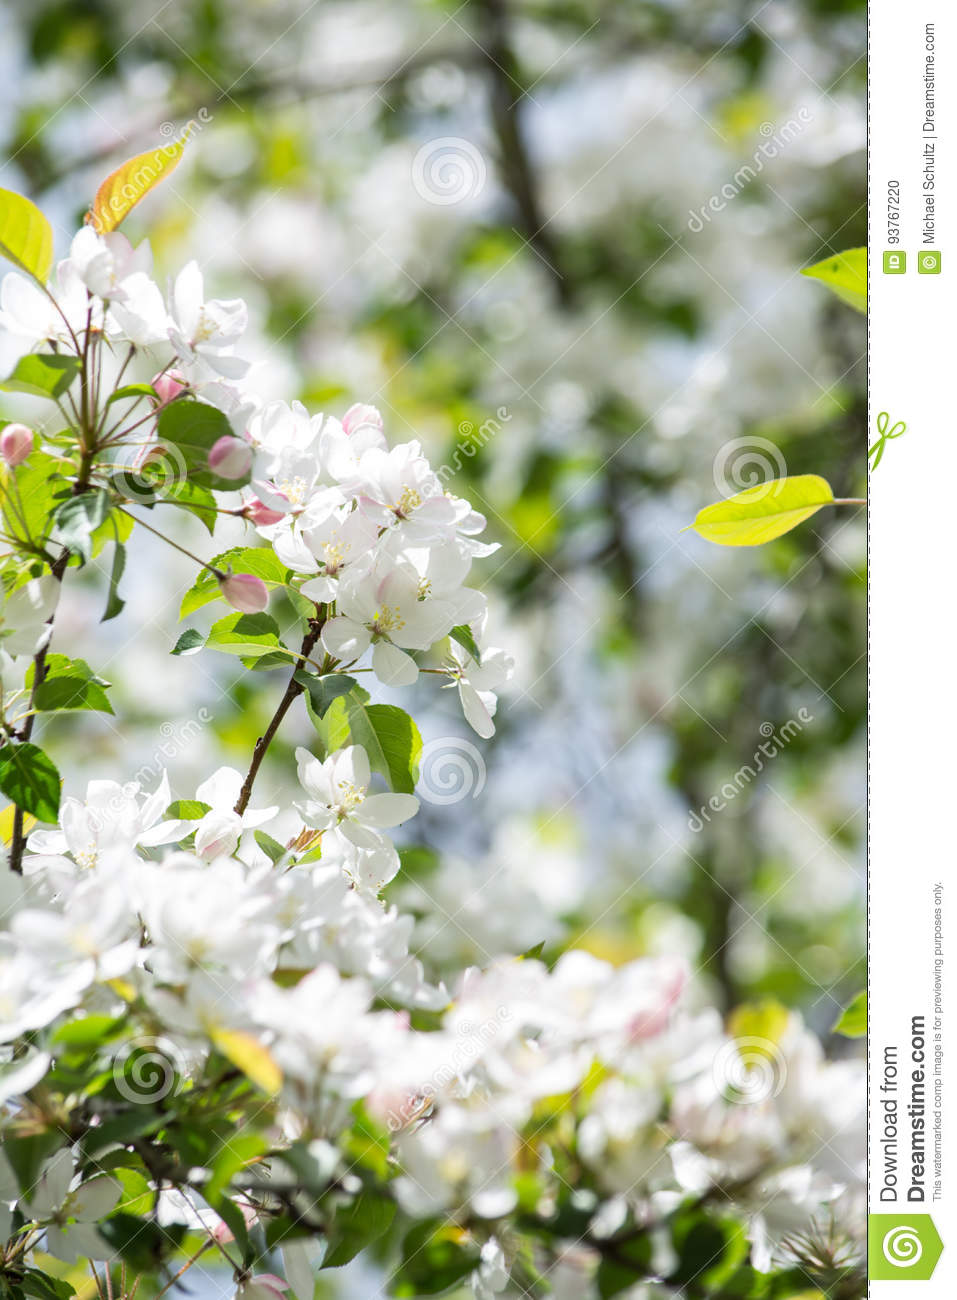 Crab Apple Tree In Bloom Stock Photo Image Of Sargent 93767220